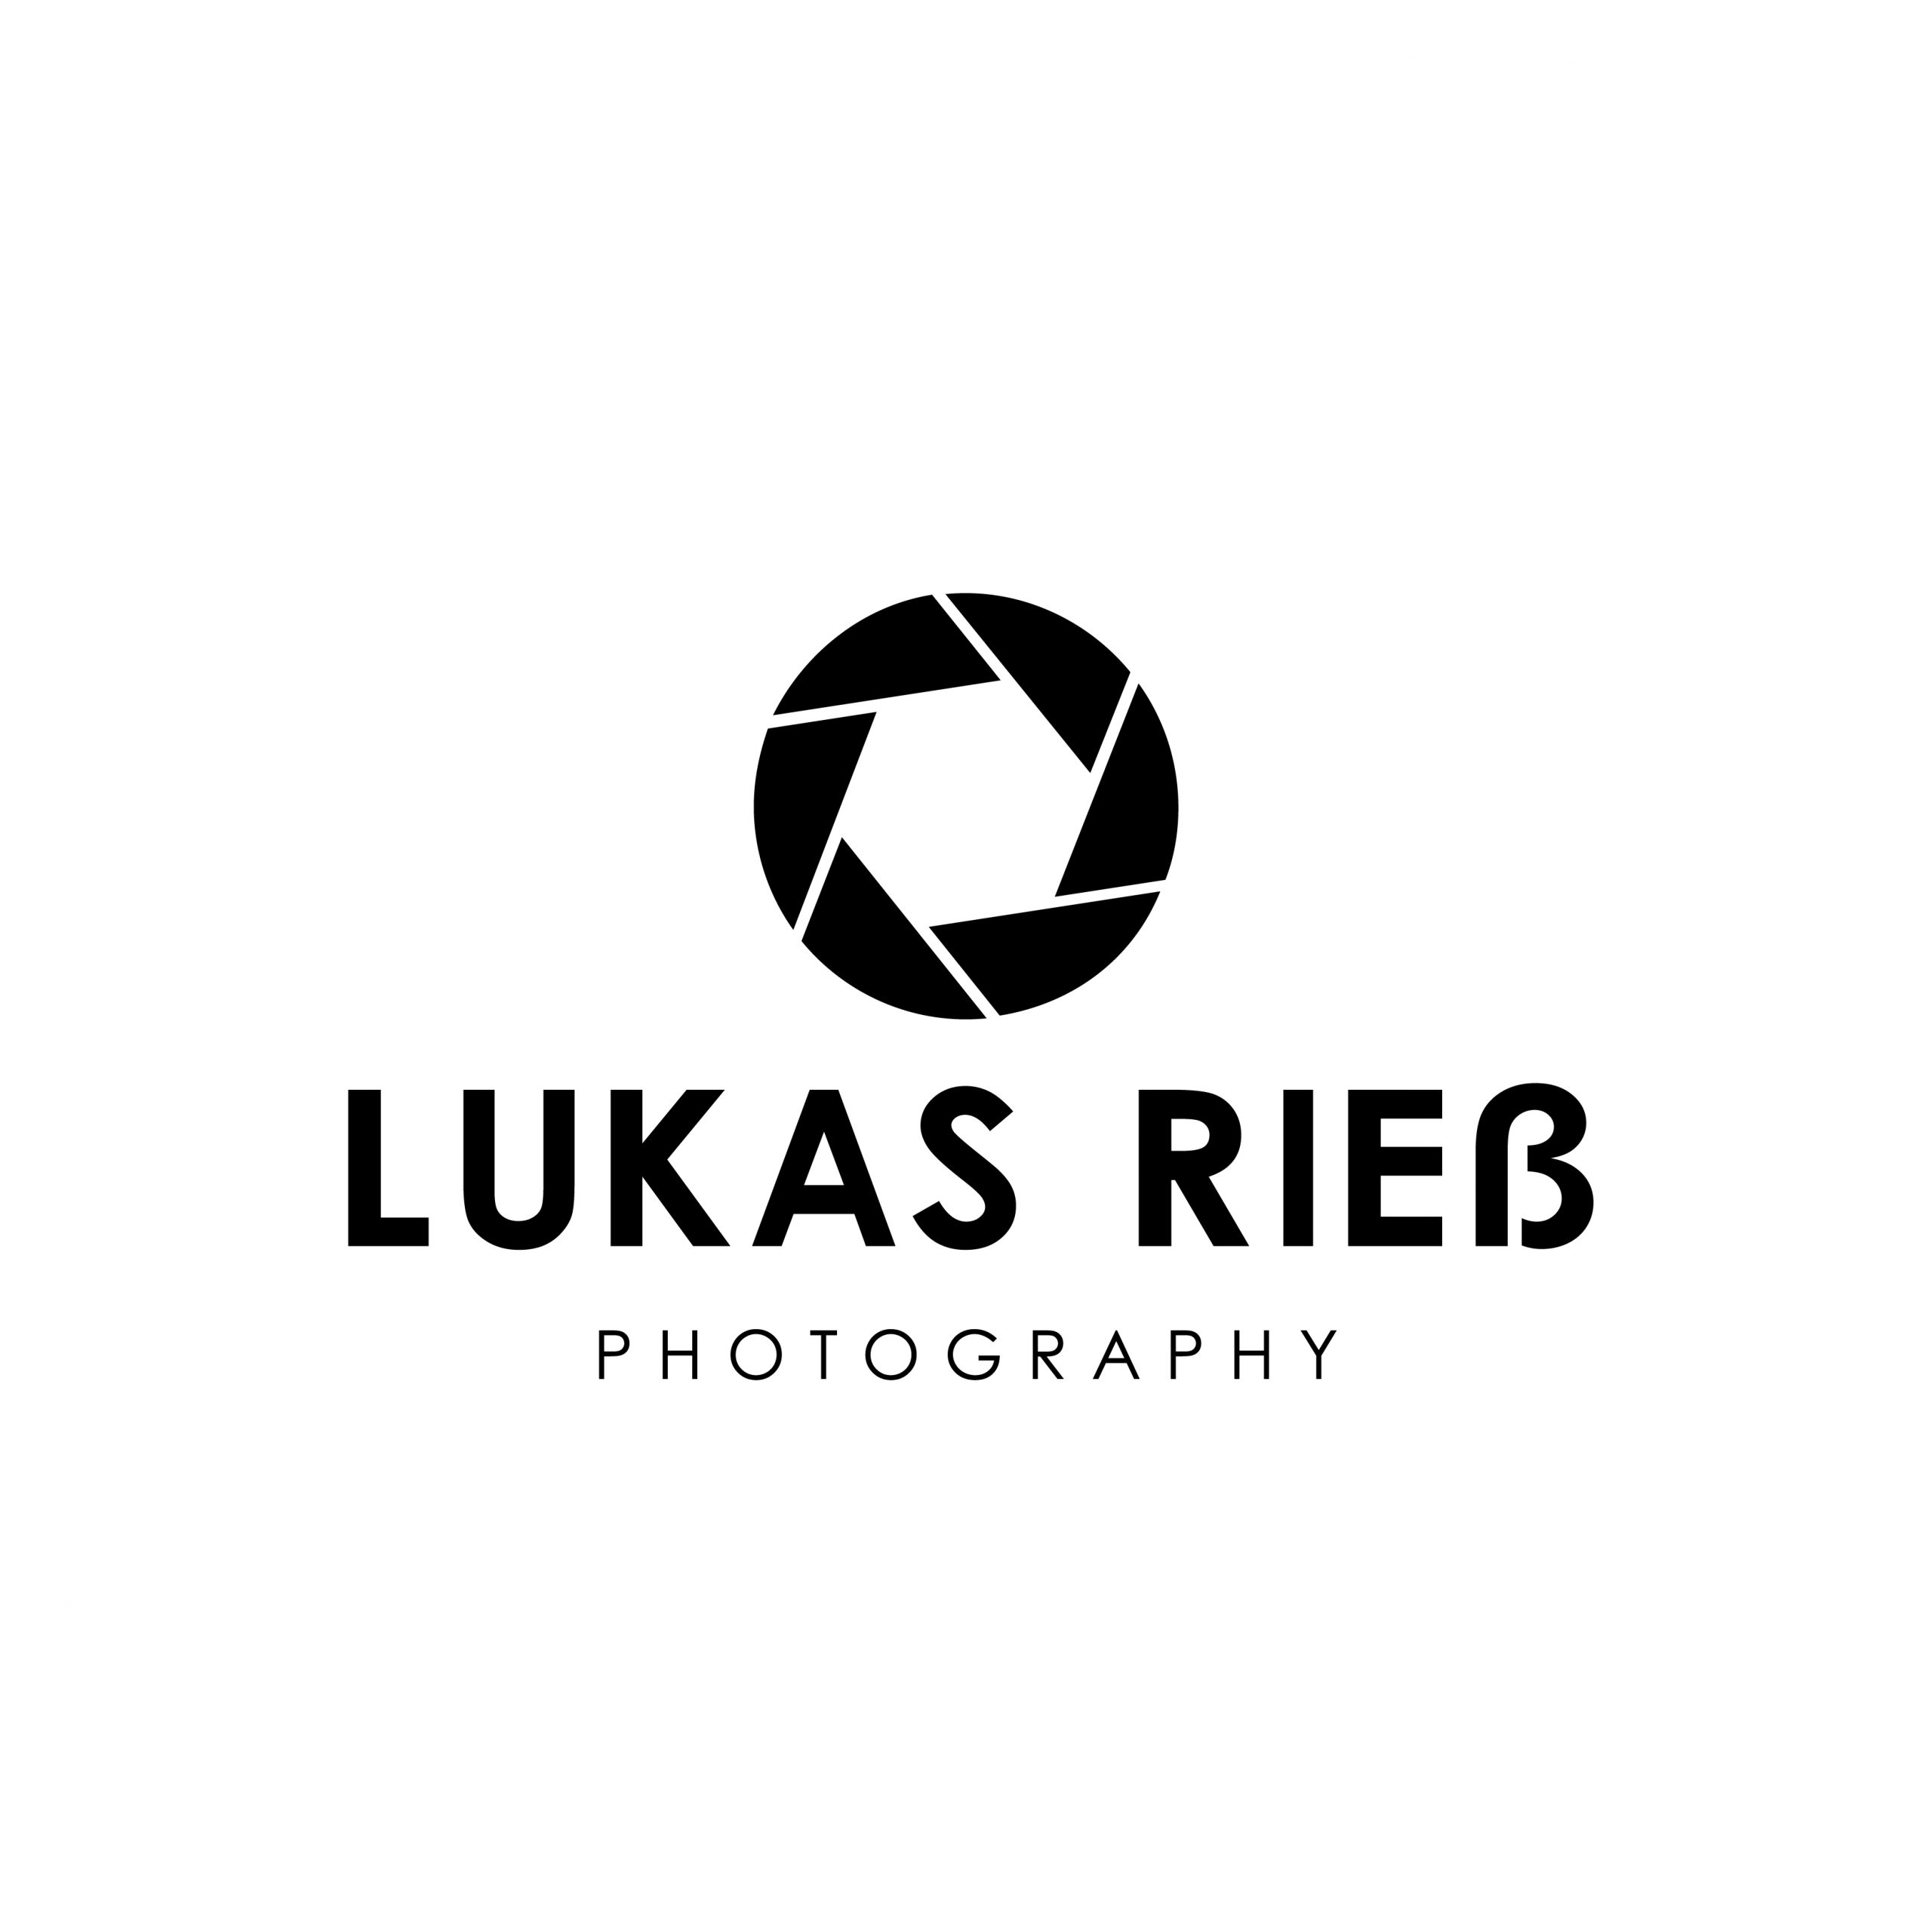 Lukas Rieß Photography